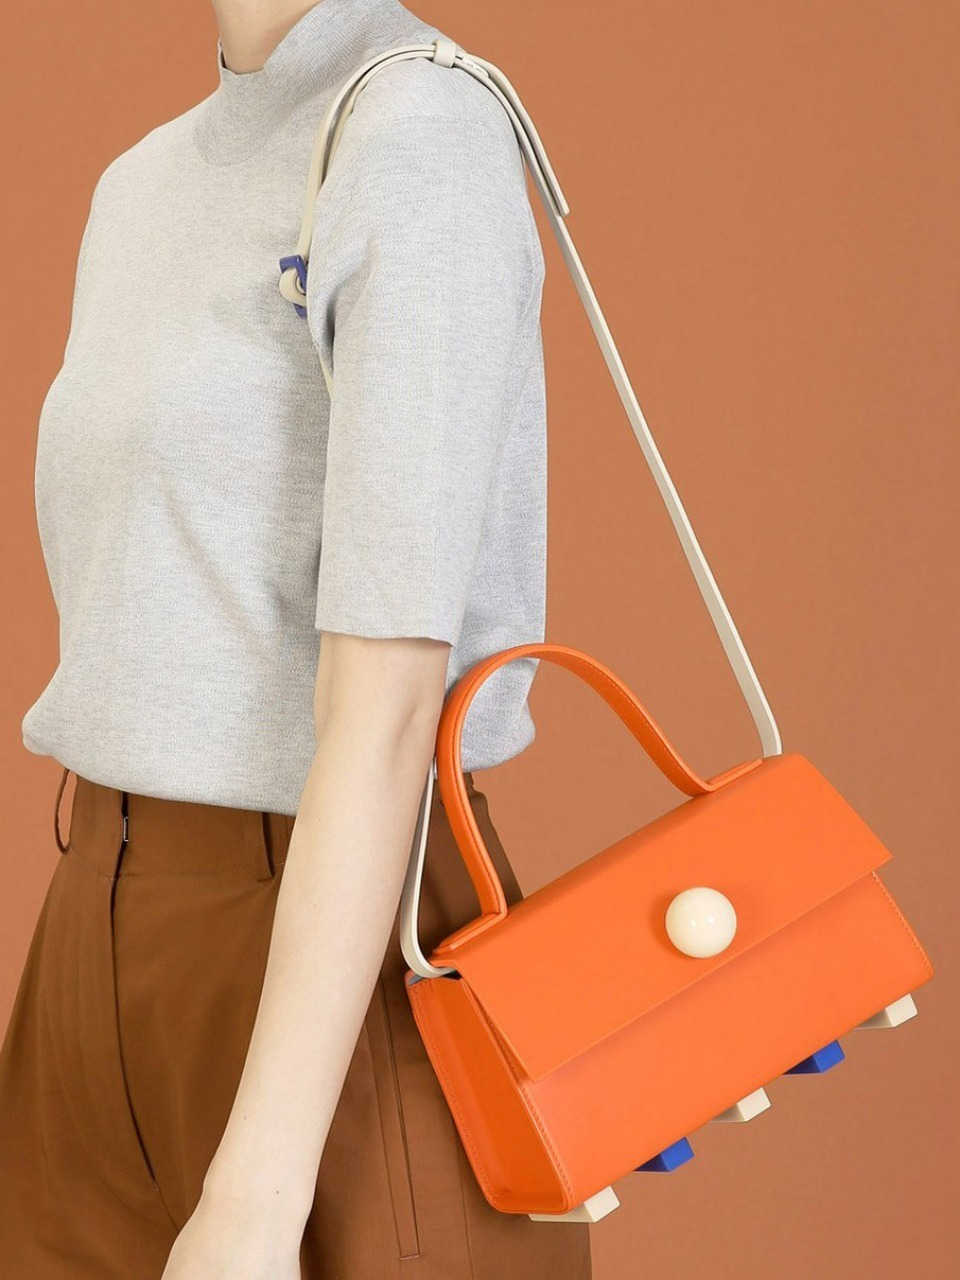 더 조엘르 | MatterMatters - [MATTER MATTERS] MINI TRAPEZOID SATCHEL BAG • ORANGE WITH STRAP